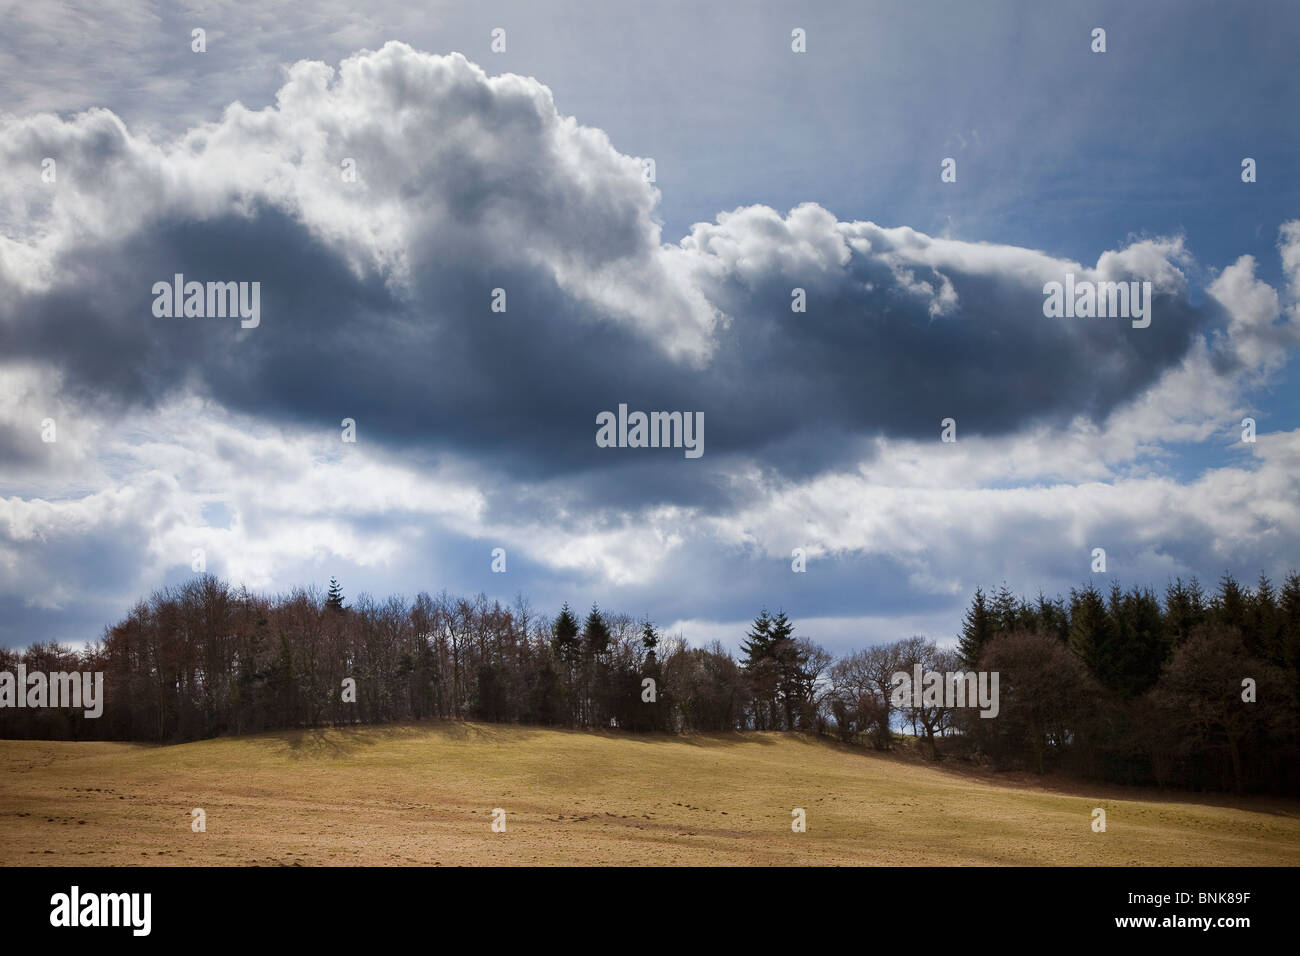 Dark clouds over forest and field Wales UK - Stock Image